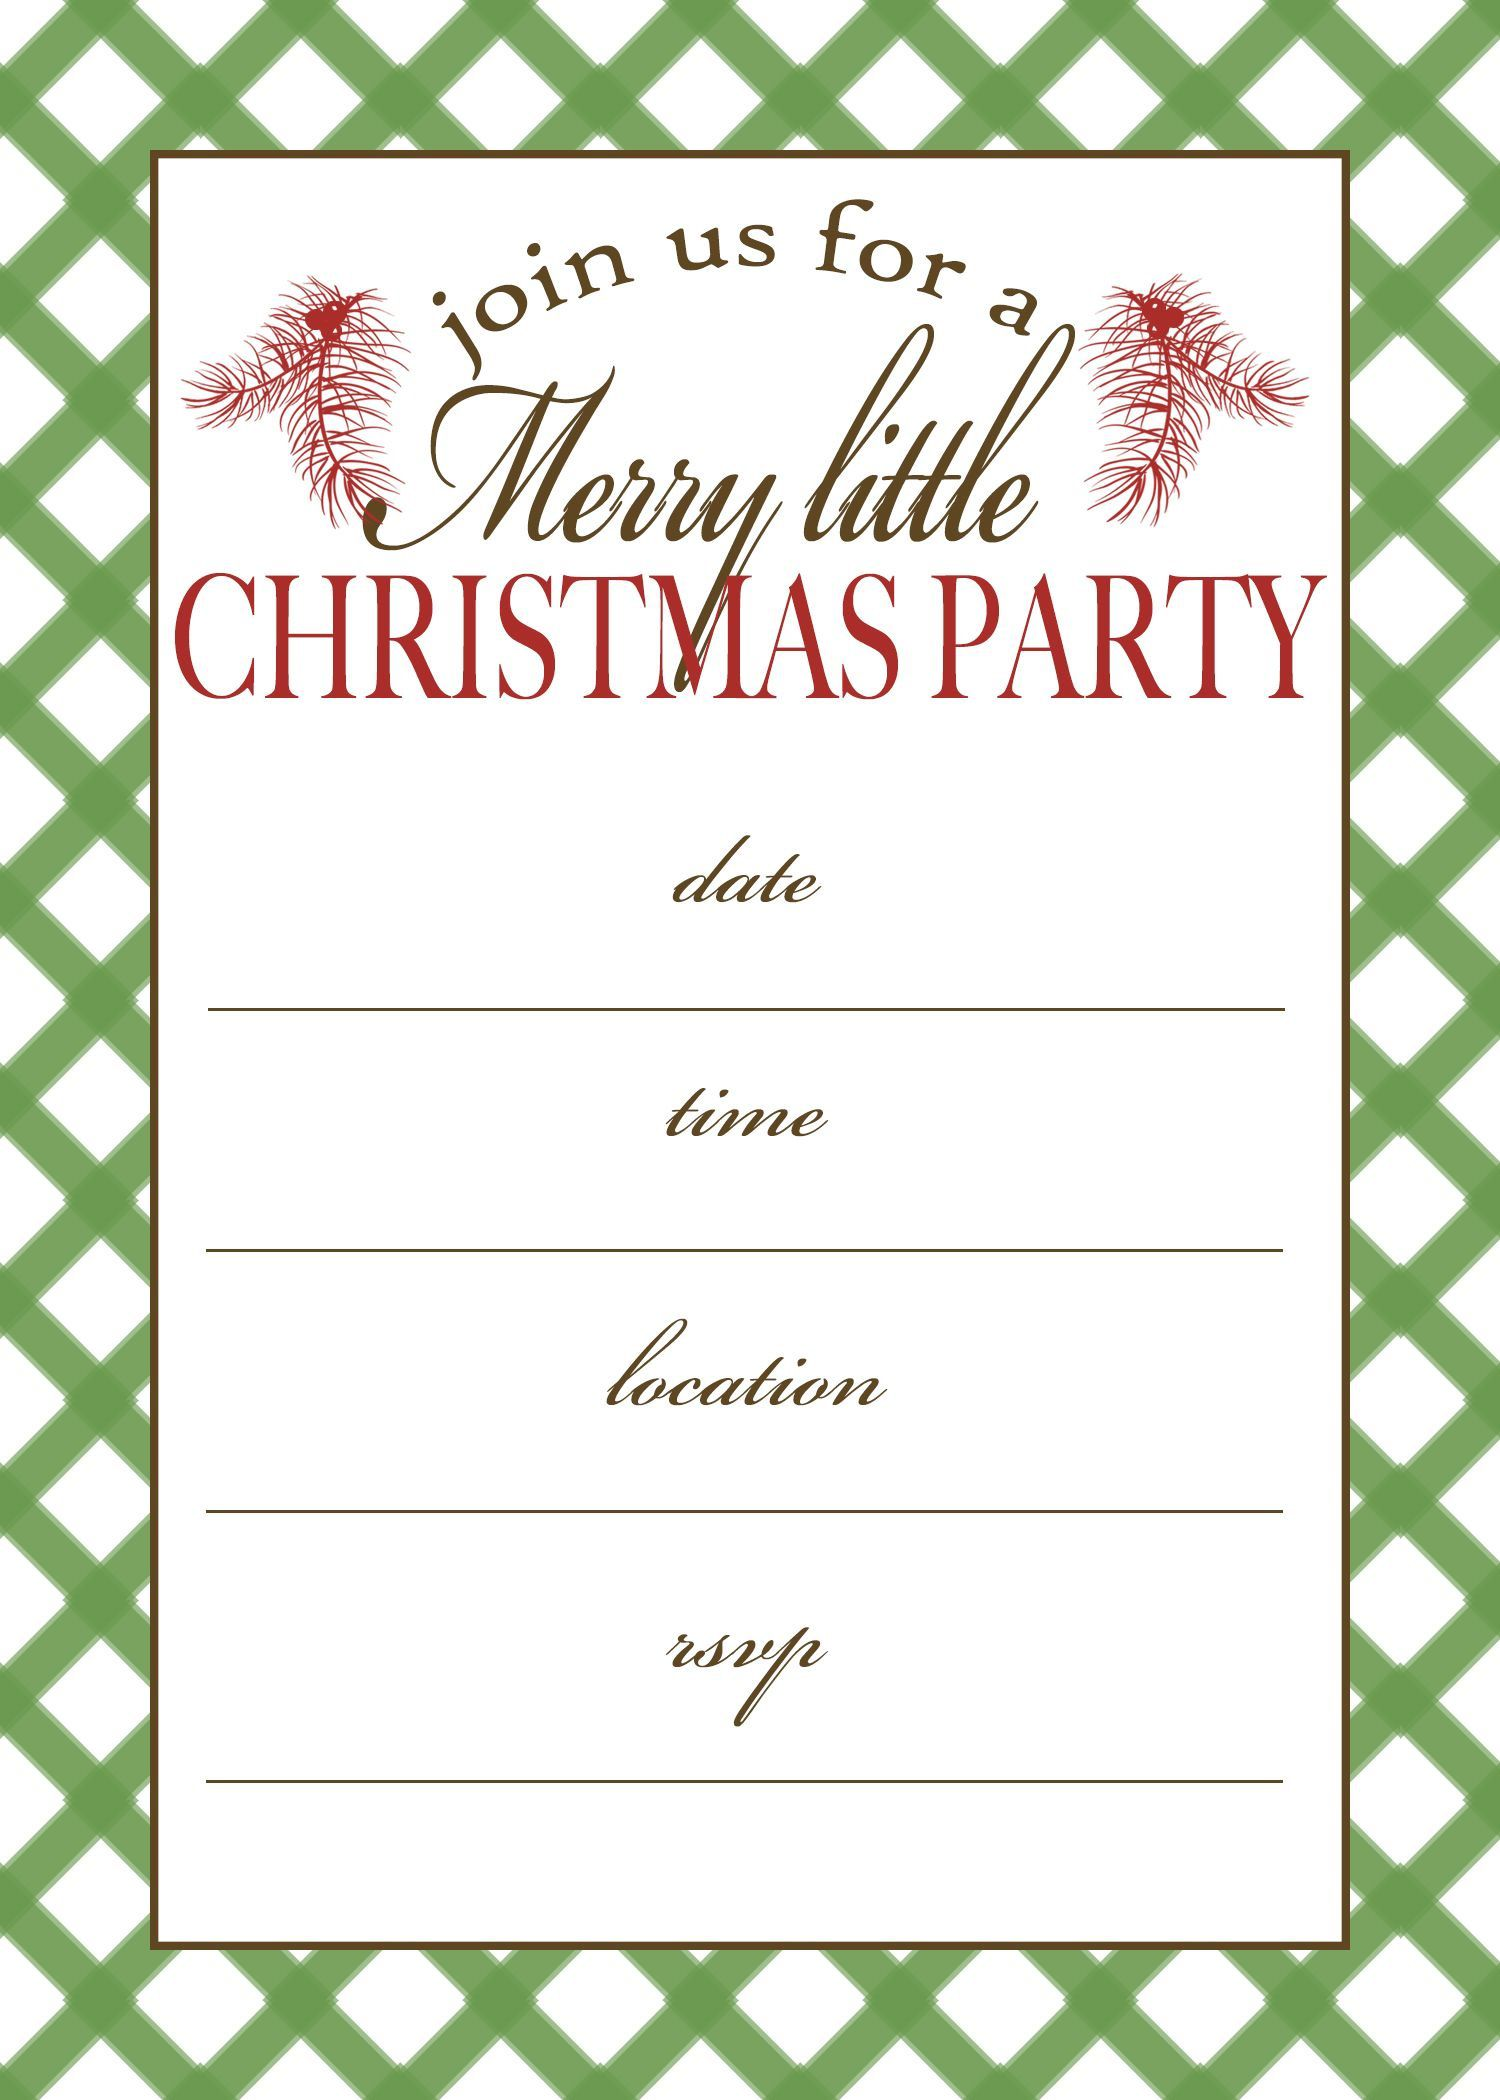 001 Incredible Christma Party Invitation Template Sample  Holiday Download Free PsdFull